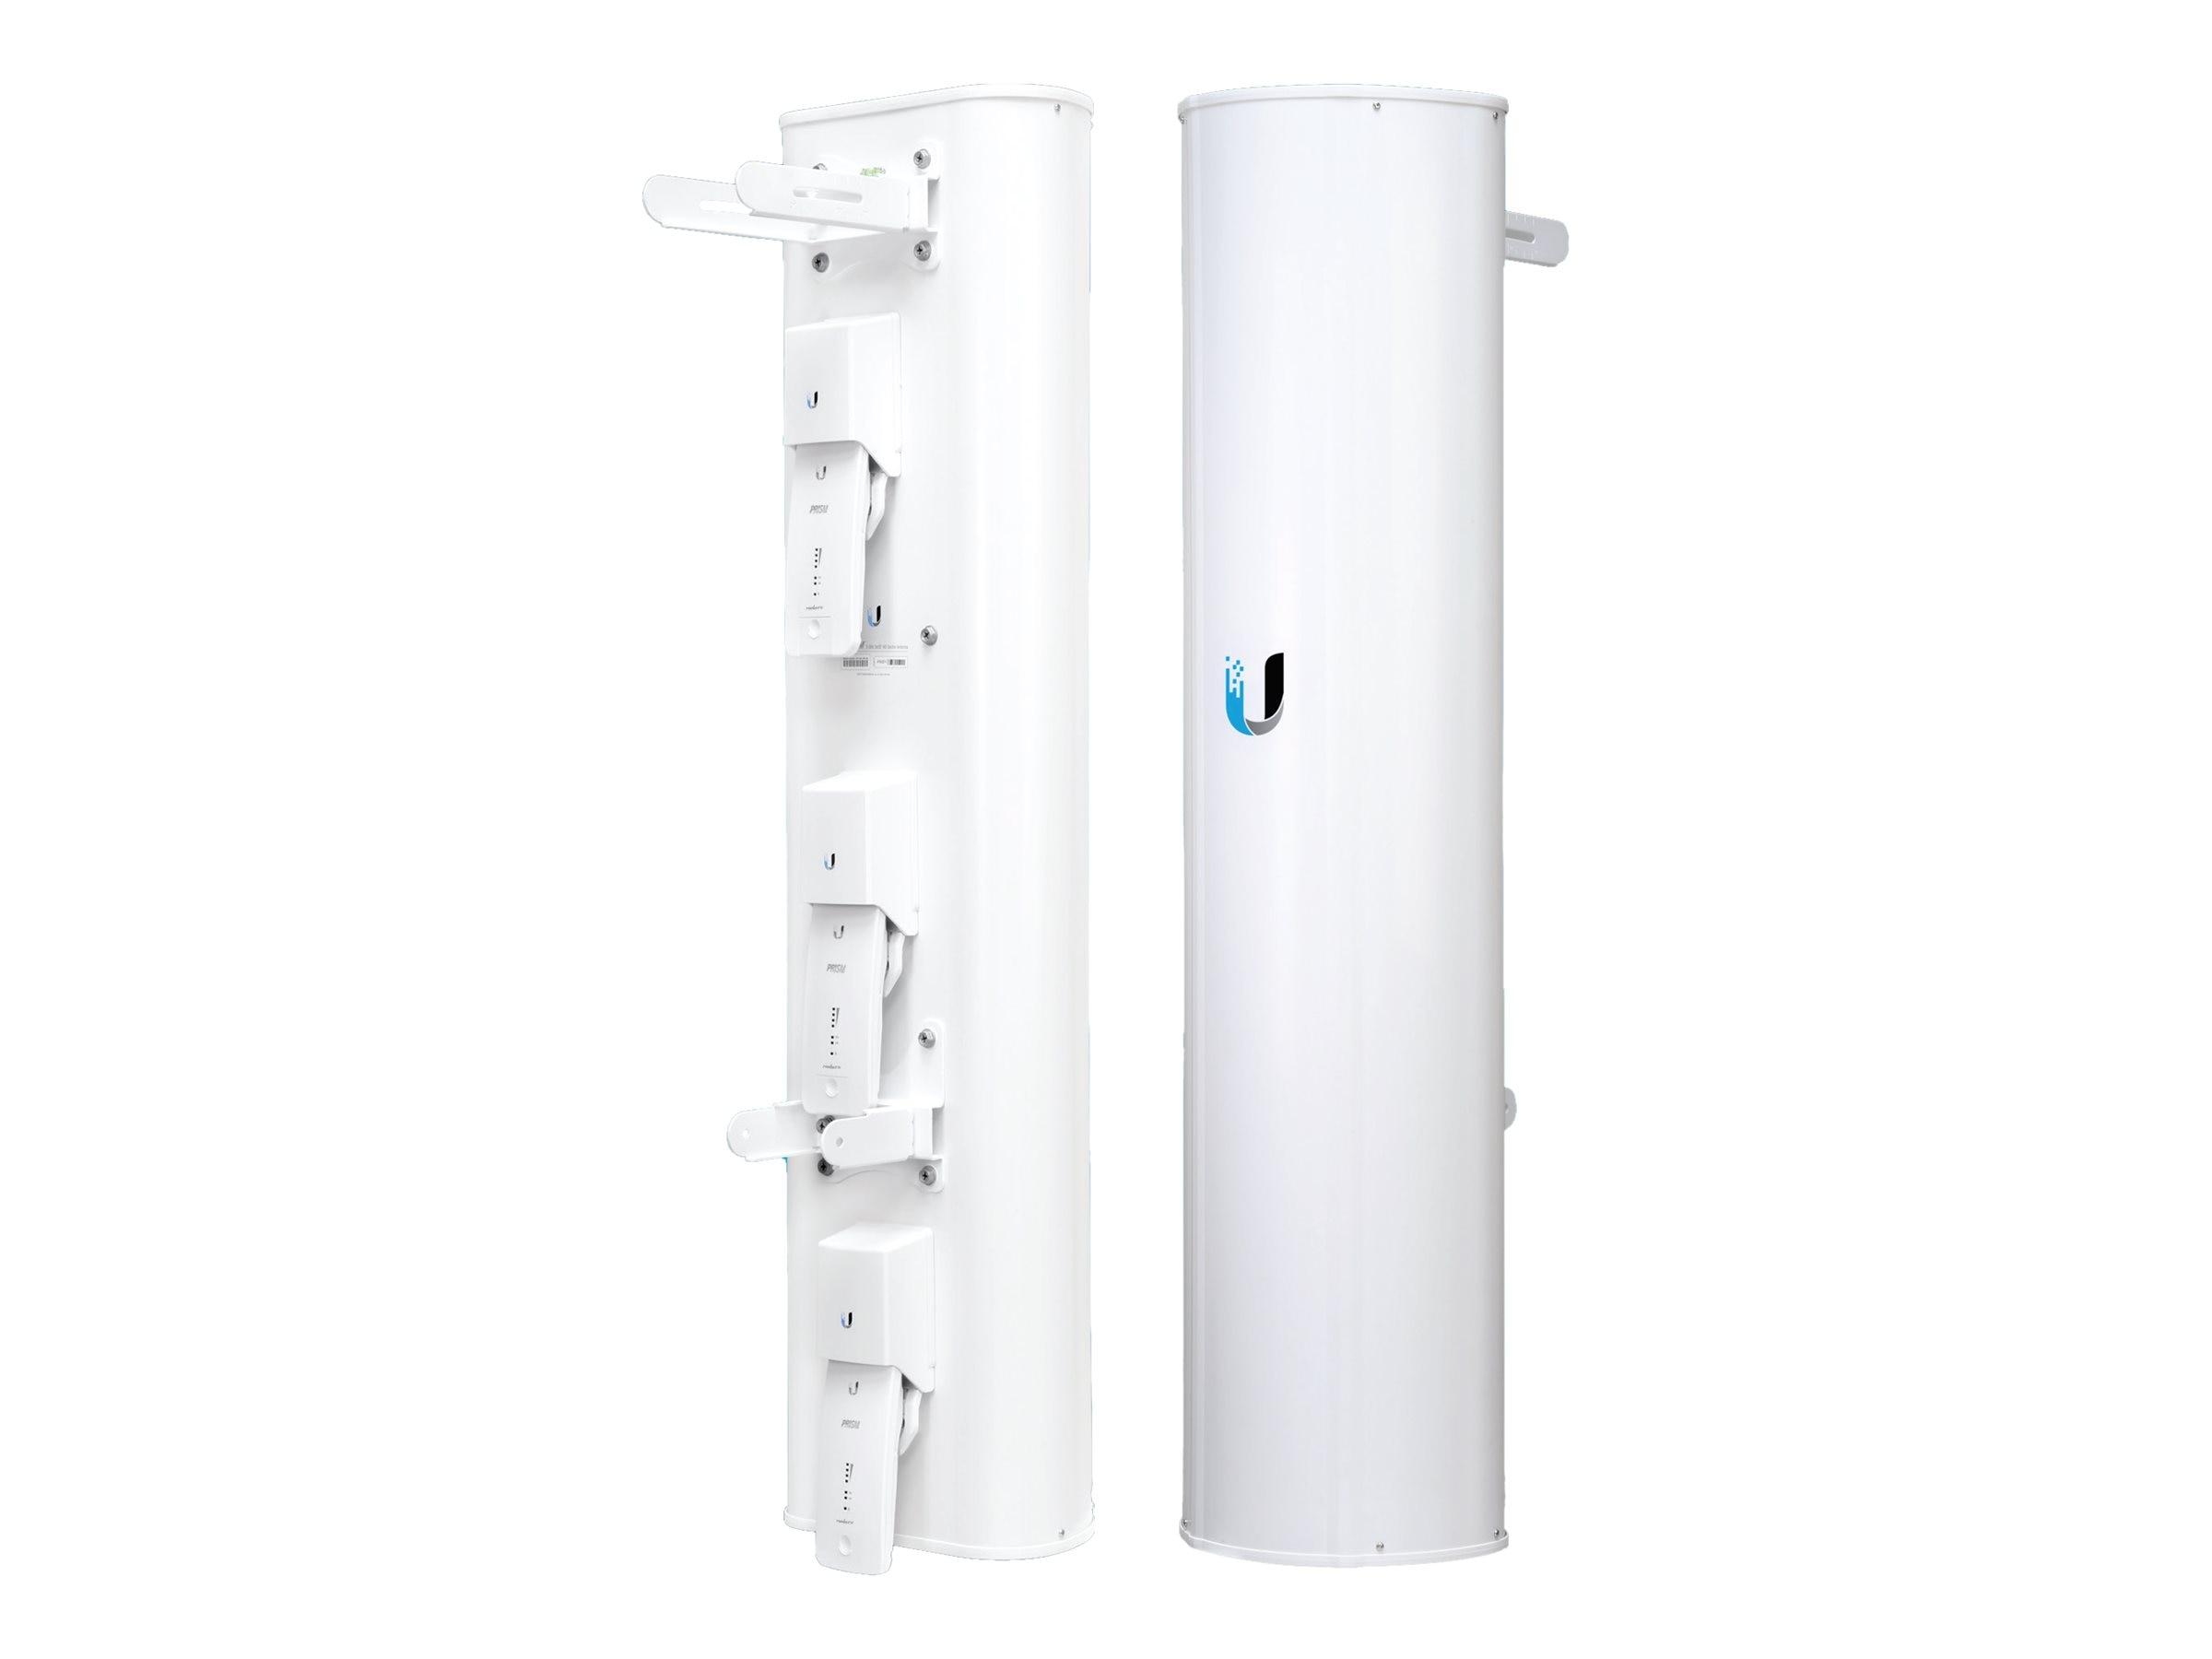 Ubiquiti 5GHz airPrism 90 Degree Wireless Sector Antenna